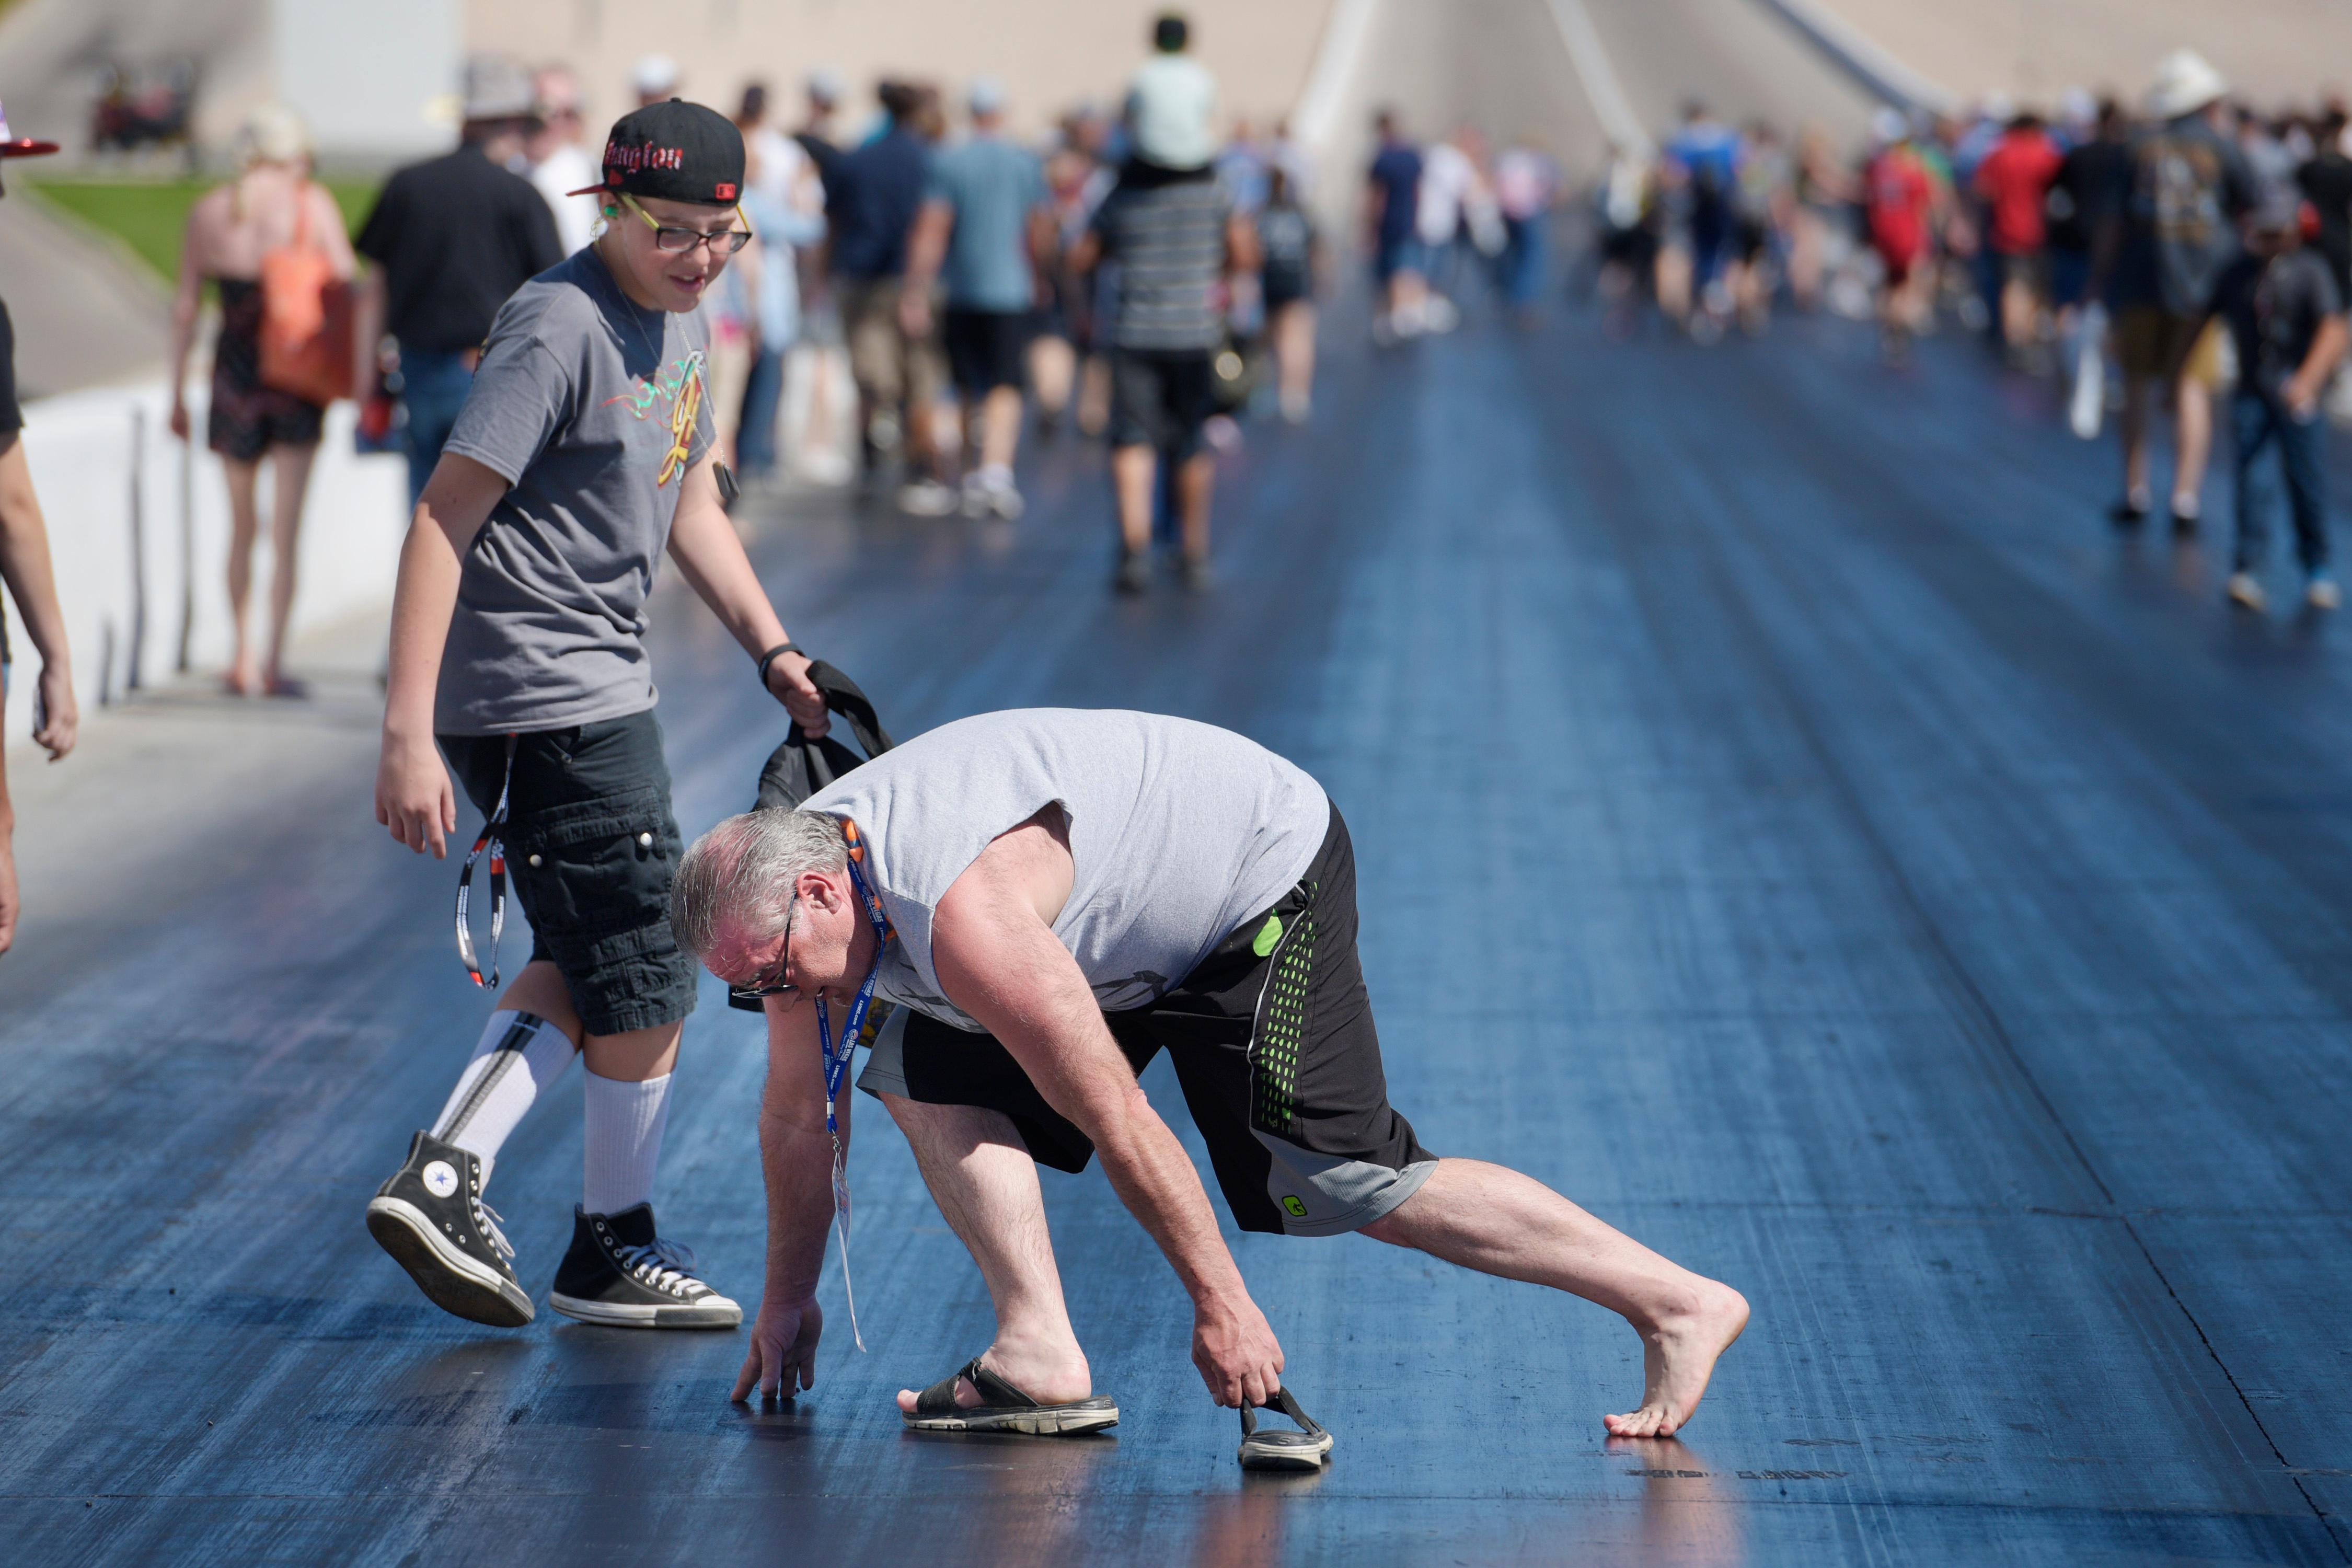 A fan loses his sandal during the track walk before the NHRA DENSO Spark Plug Nationals at The Strip at the Las Vegas Motor Speedway Sunday, April 2, 2017. (Sam Morris/Las Vegas News Bureau)